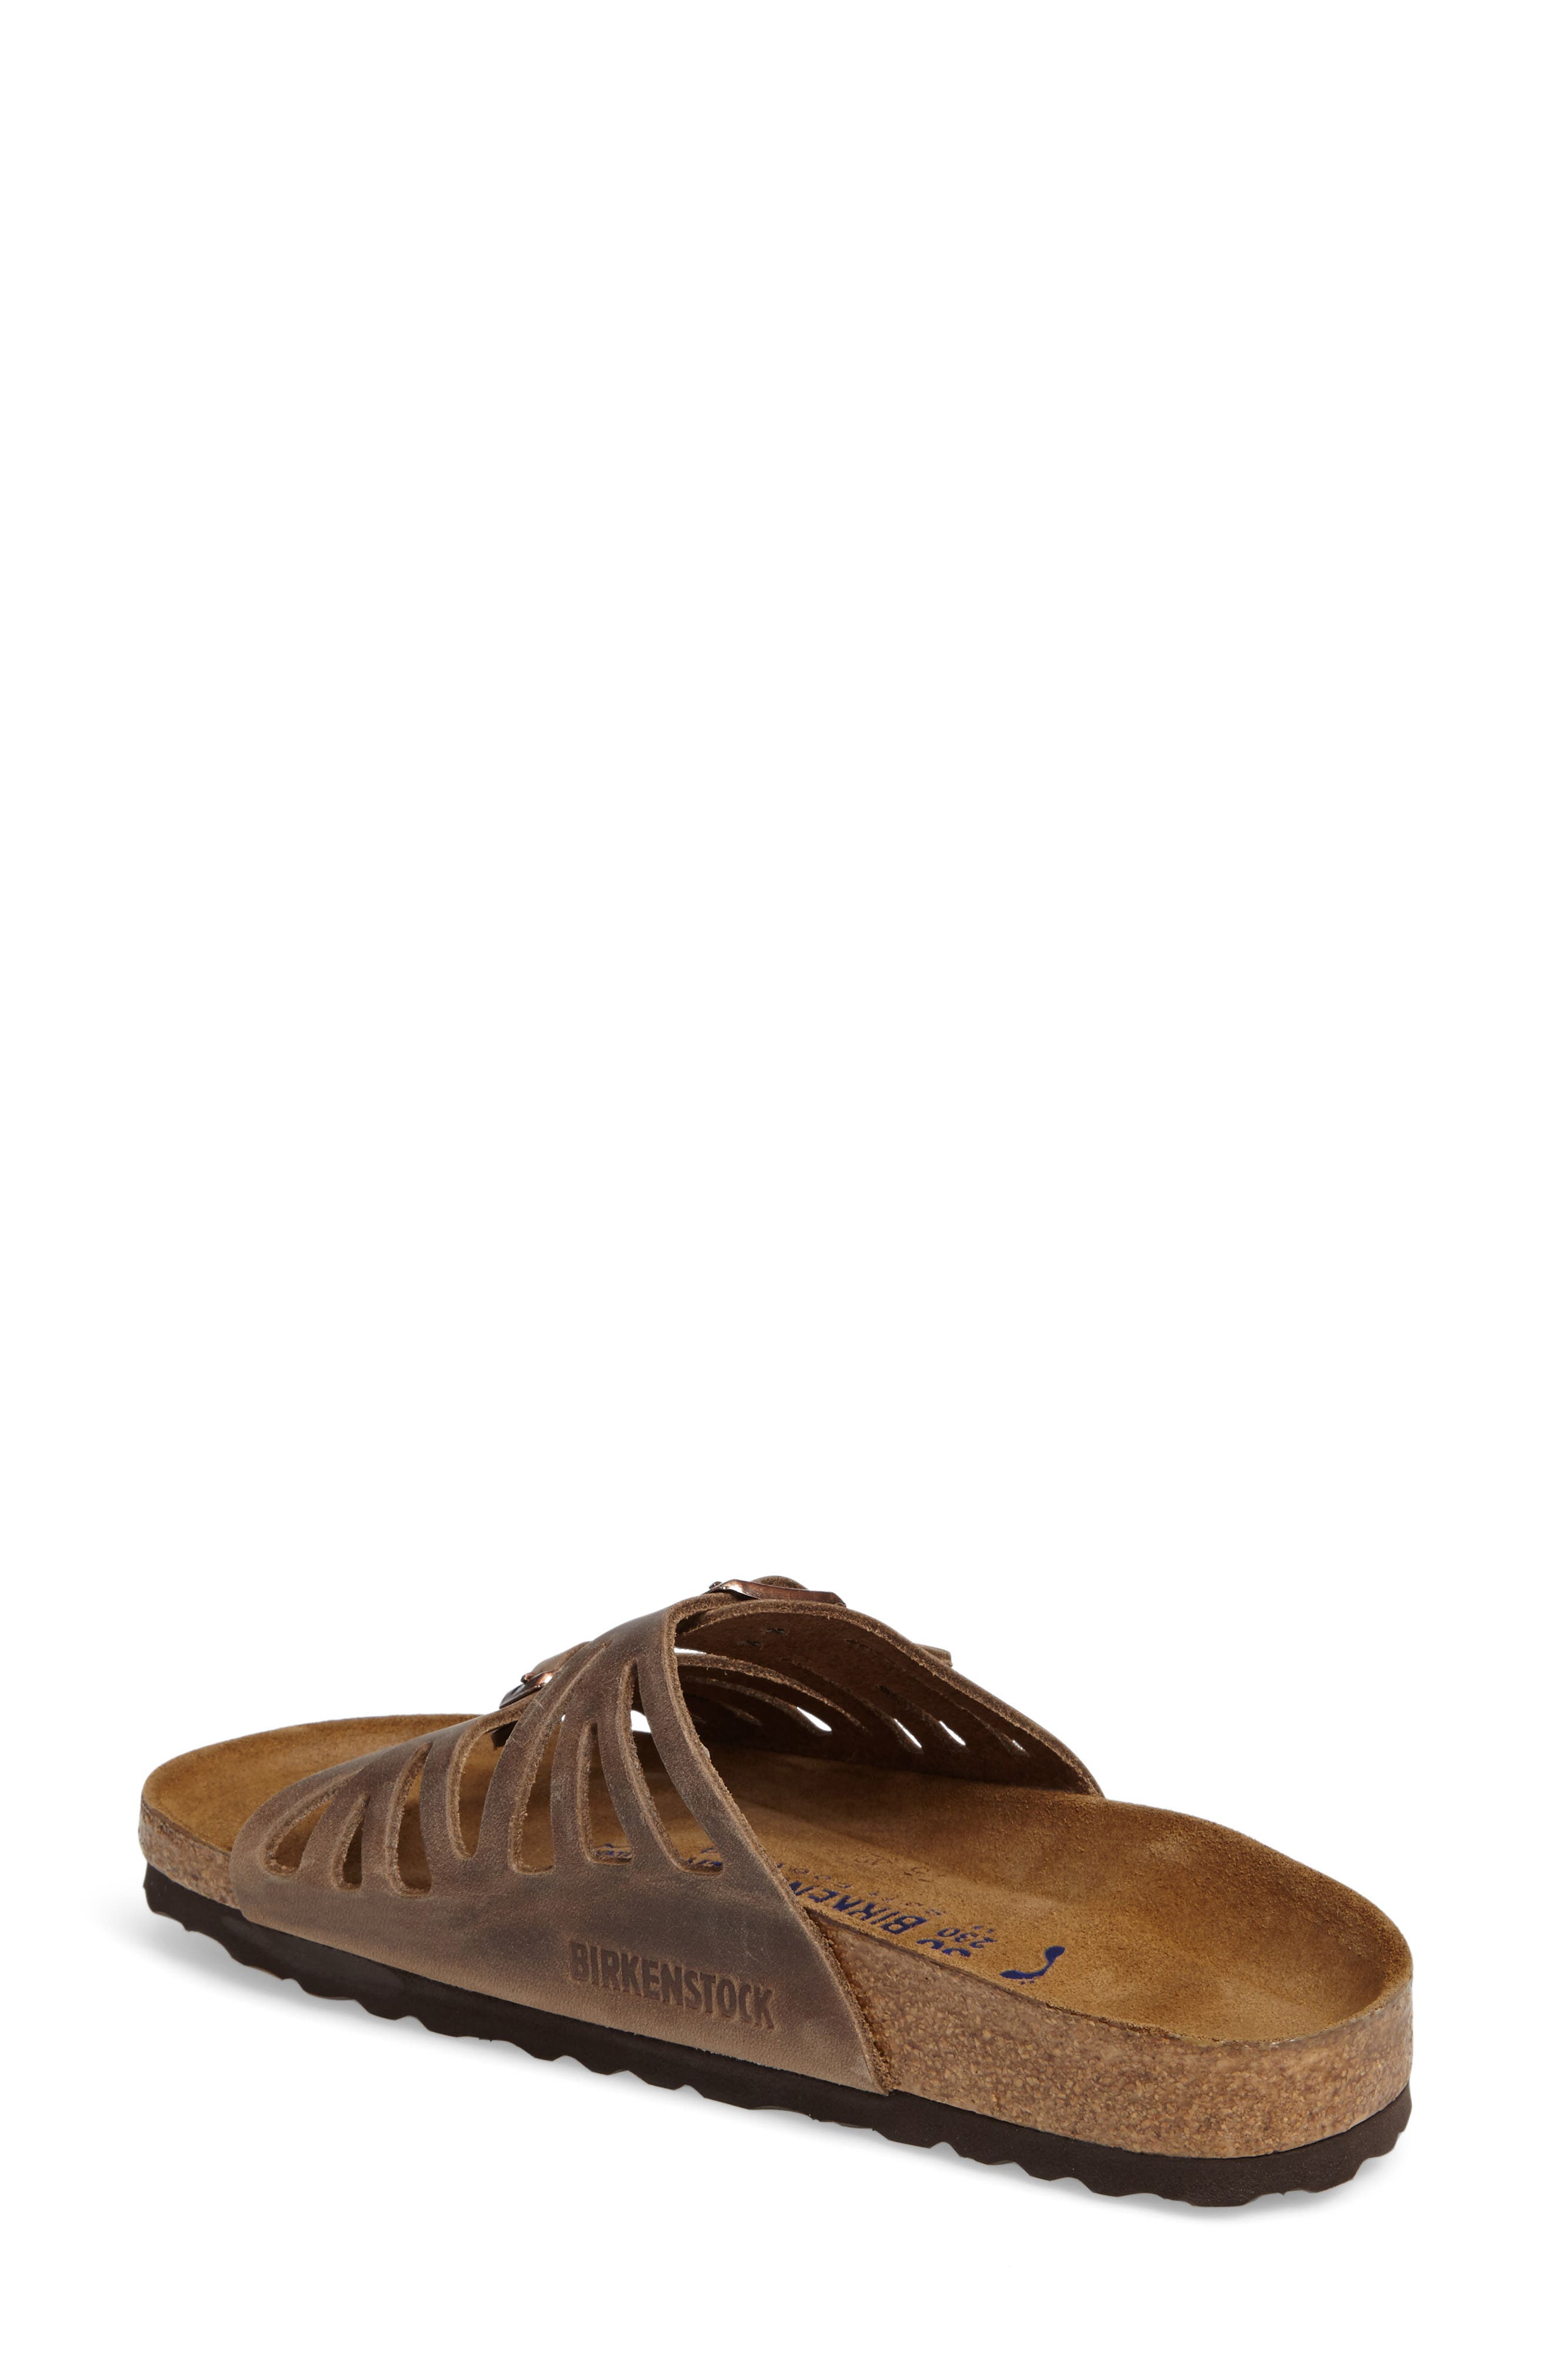 Granada Soft Footbed Oiled Leather Sandal,                             Alternate thumbnail 3, color,                             TOBACCO